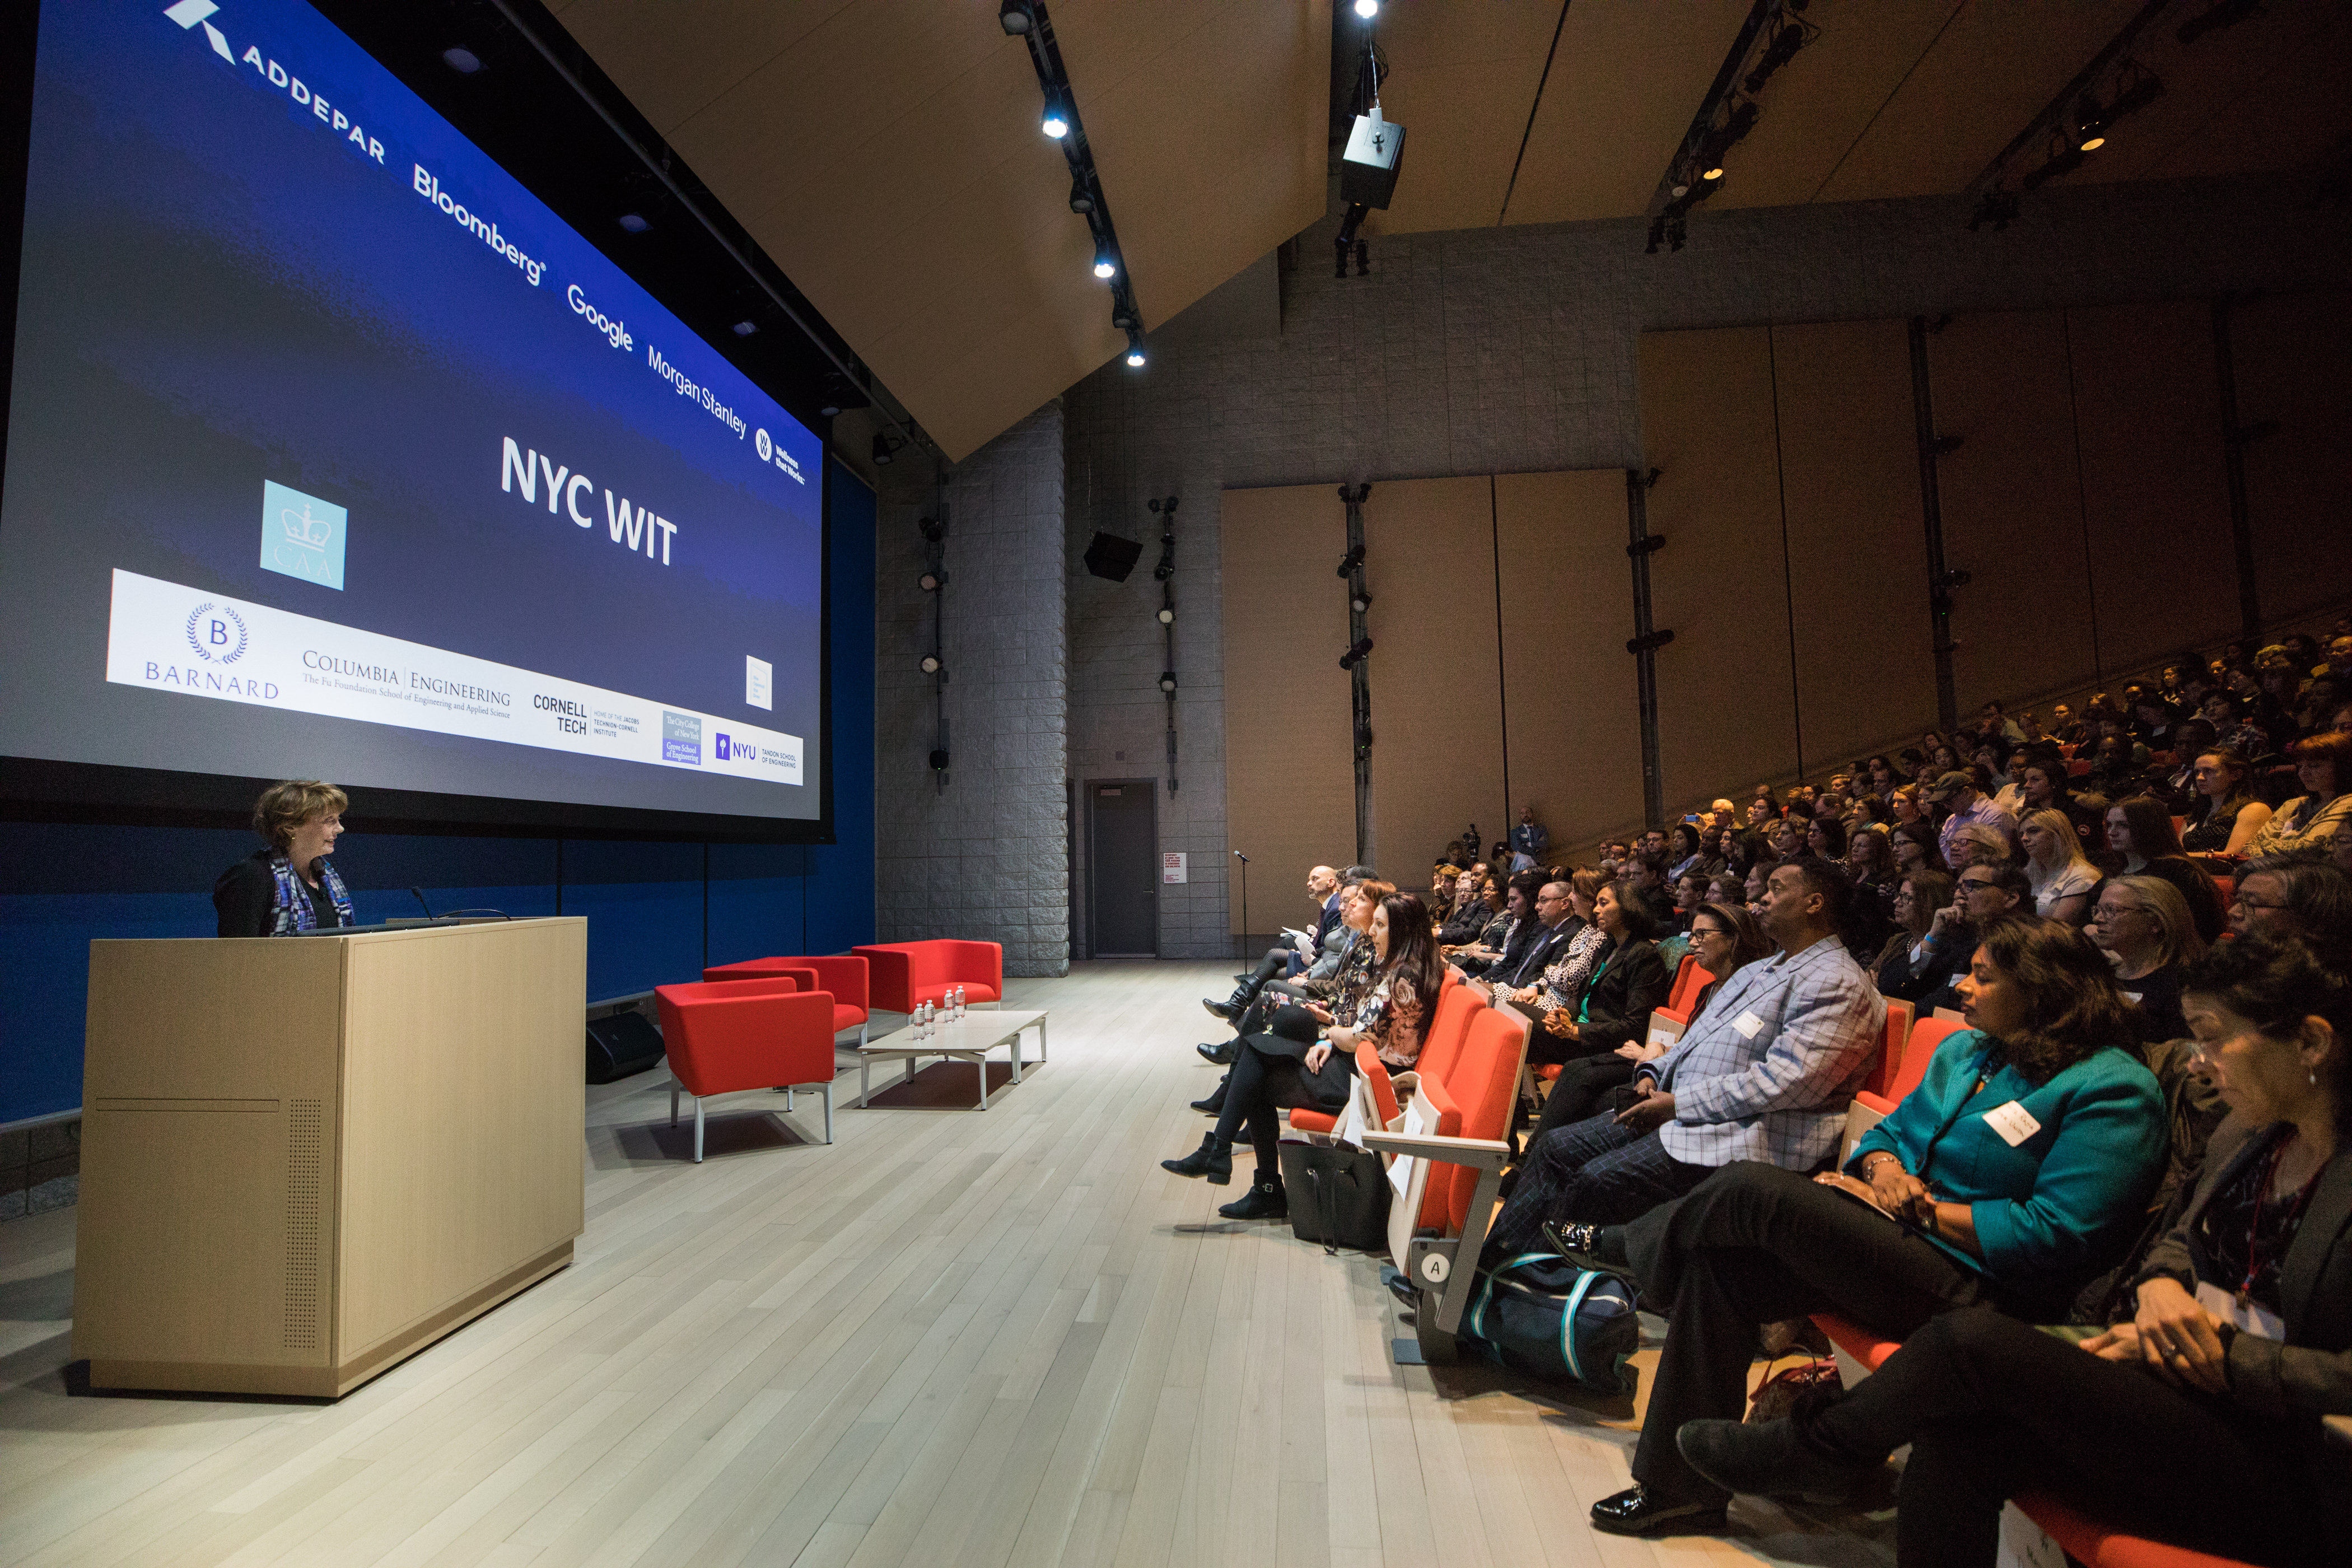 NYC WIT Encourages Women to Pursue Engineering/Technology